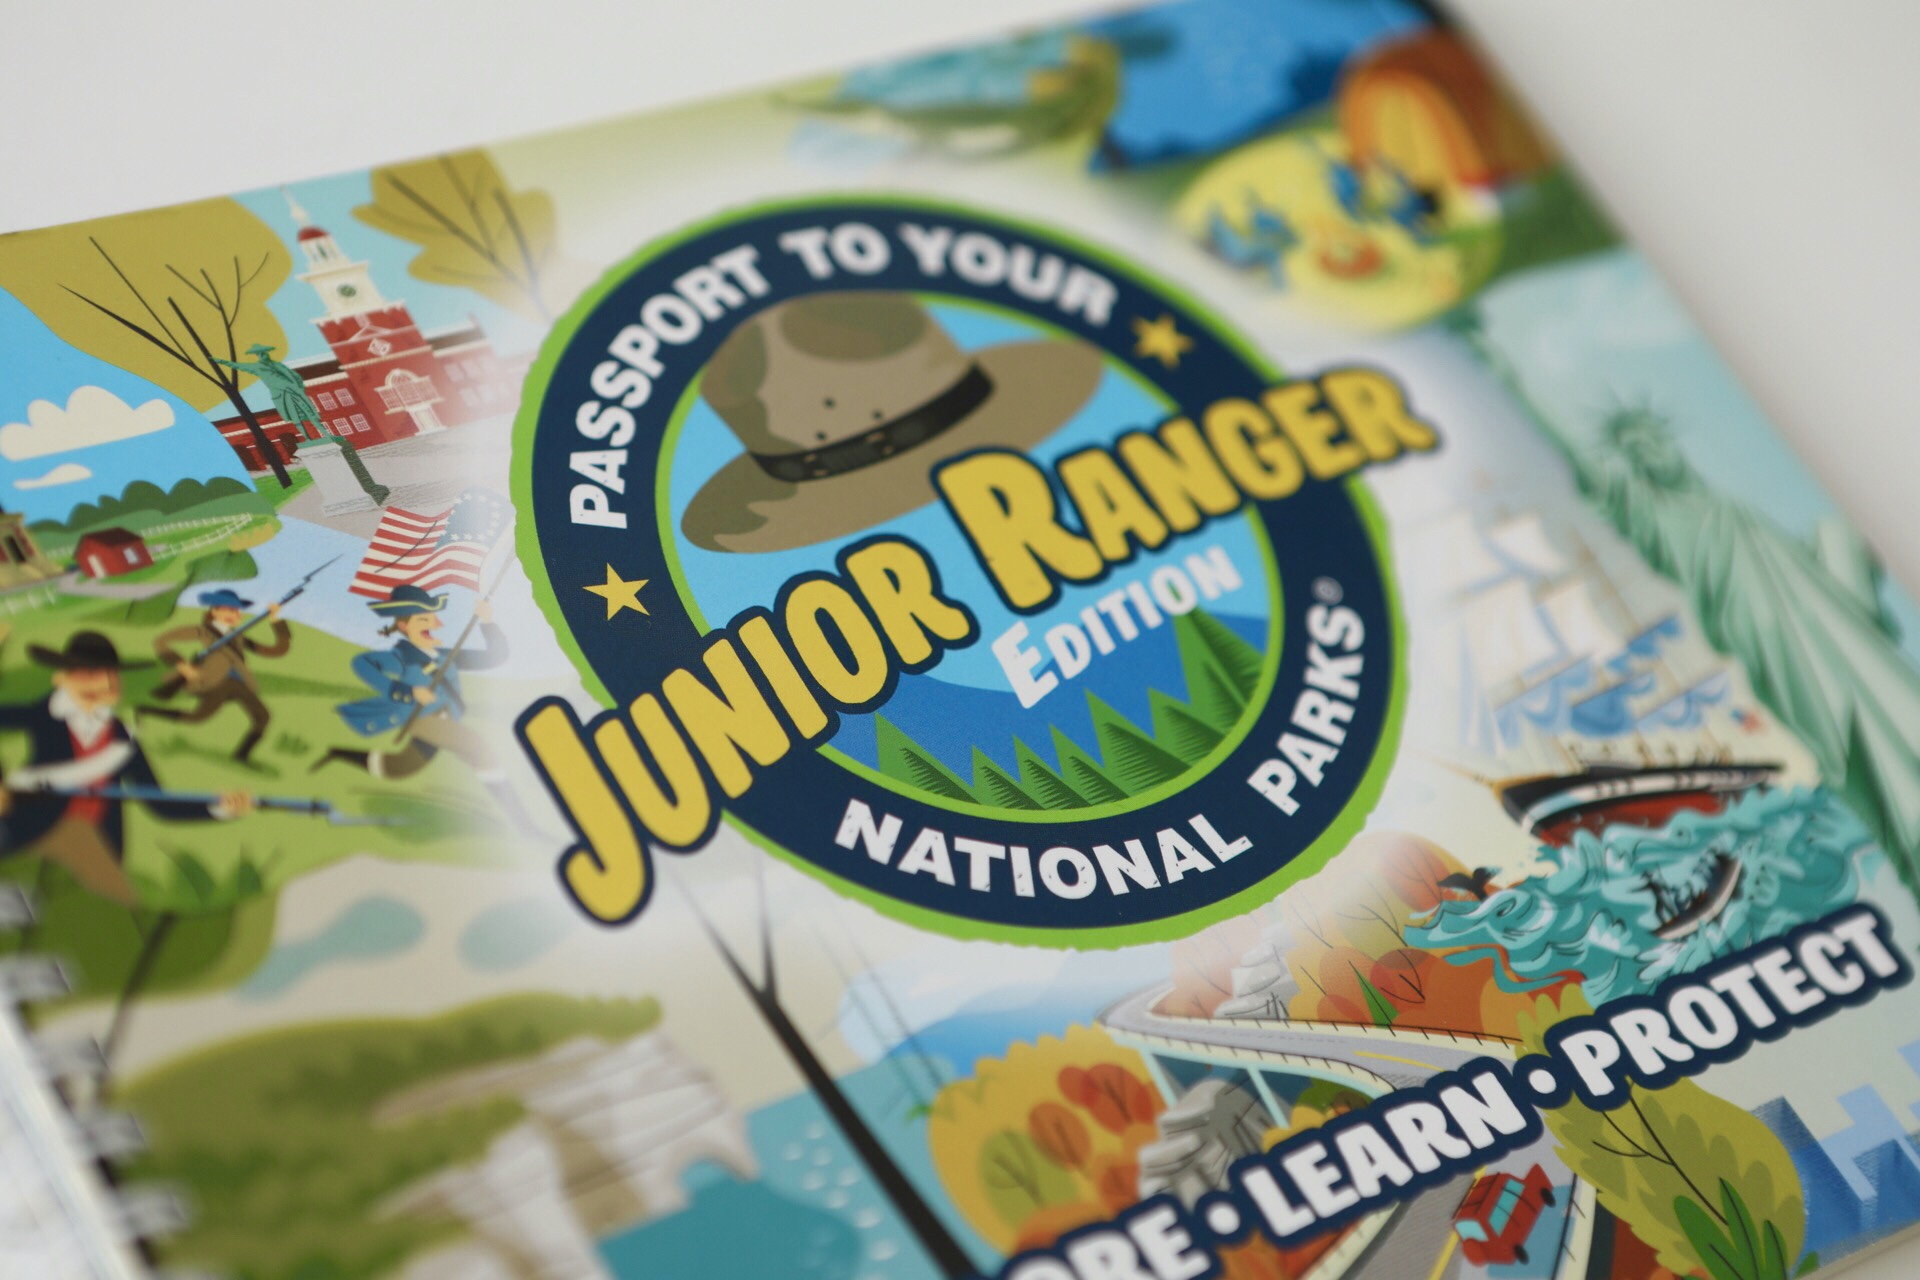 National Parks Junior Ranger Passport Book, Family Trip, Gift Ideas, Gift for kids